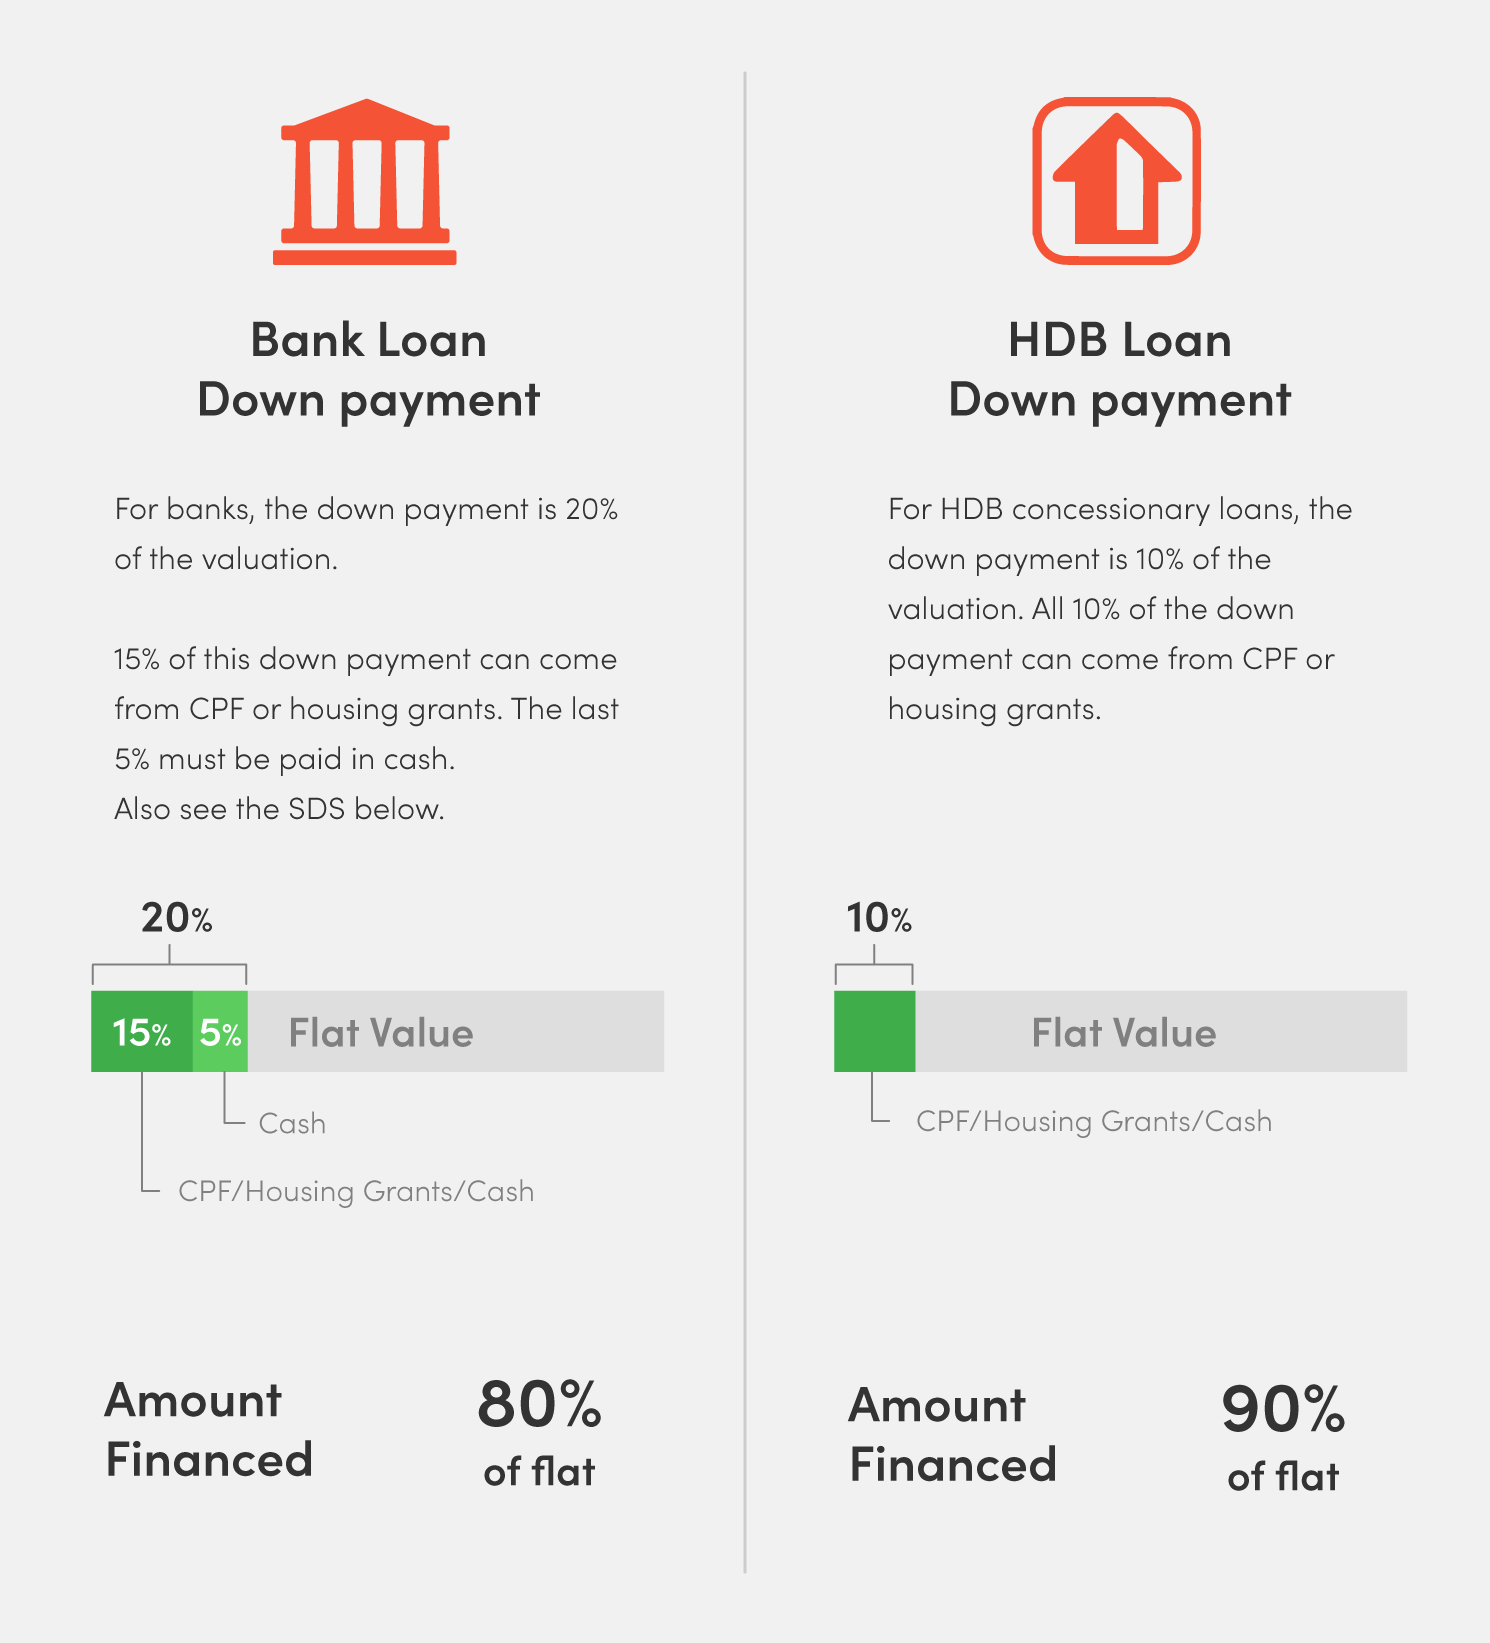 home loans in Singapore downpayment bank loan hdb loan